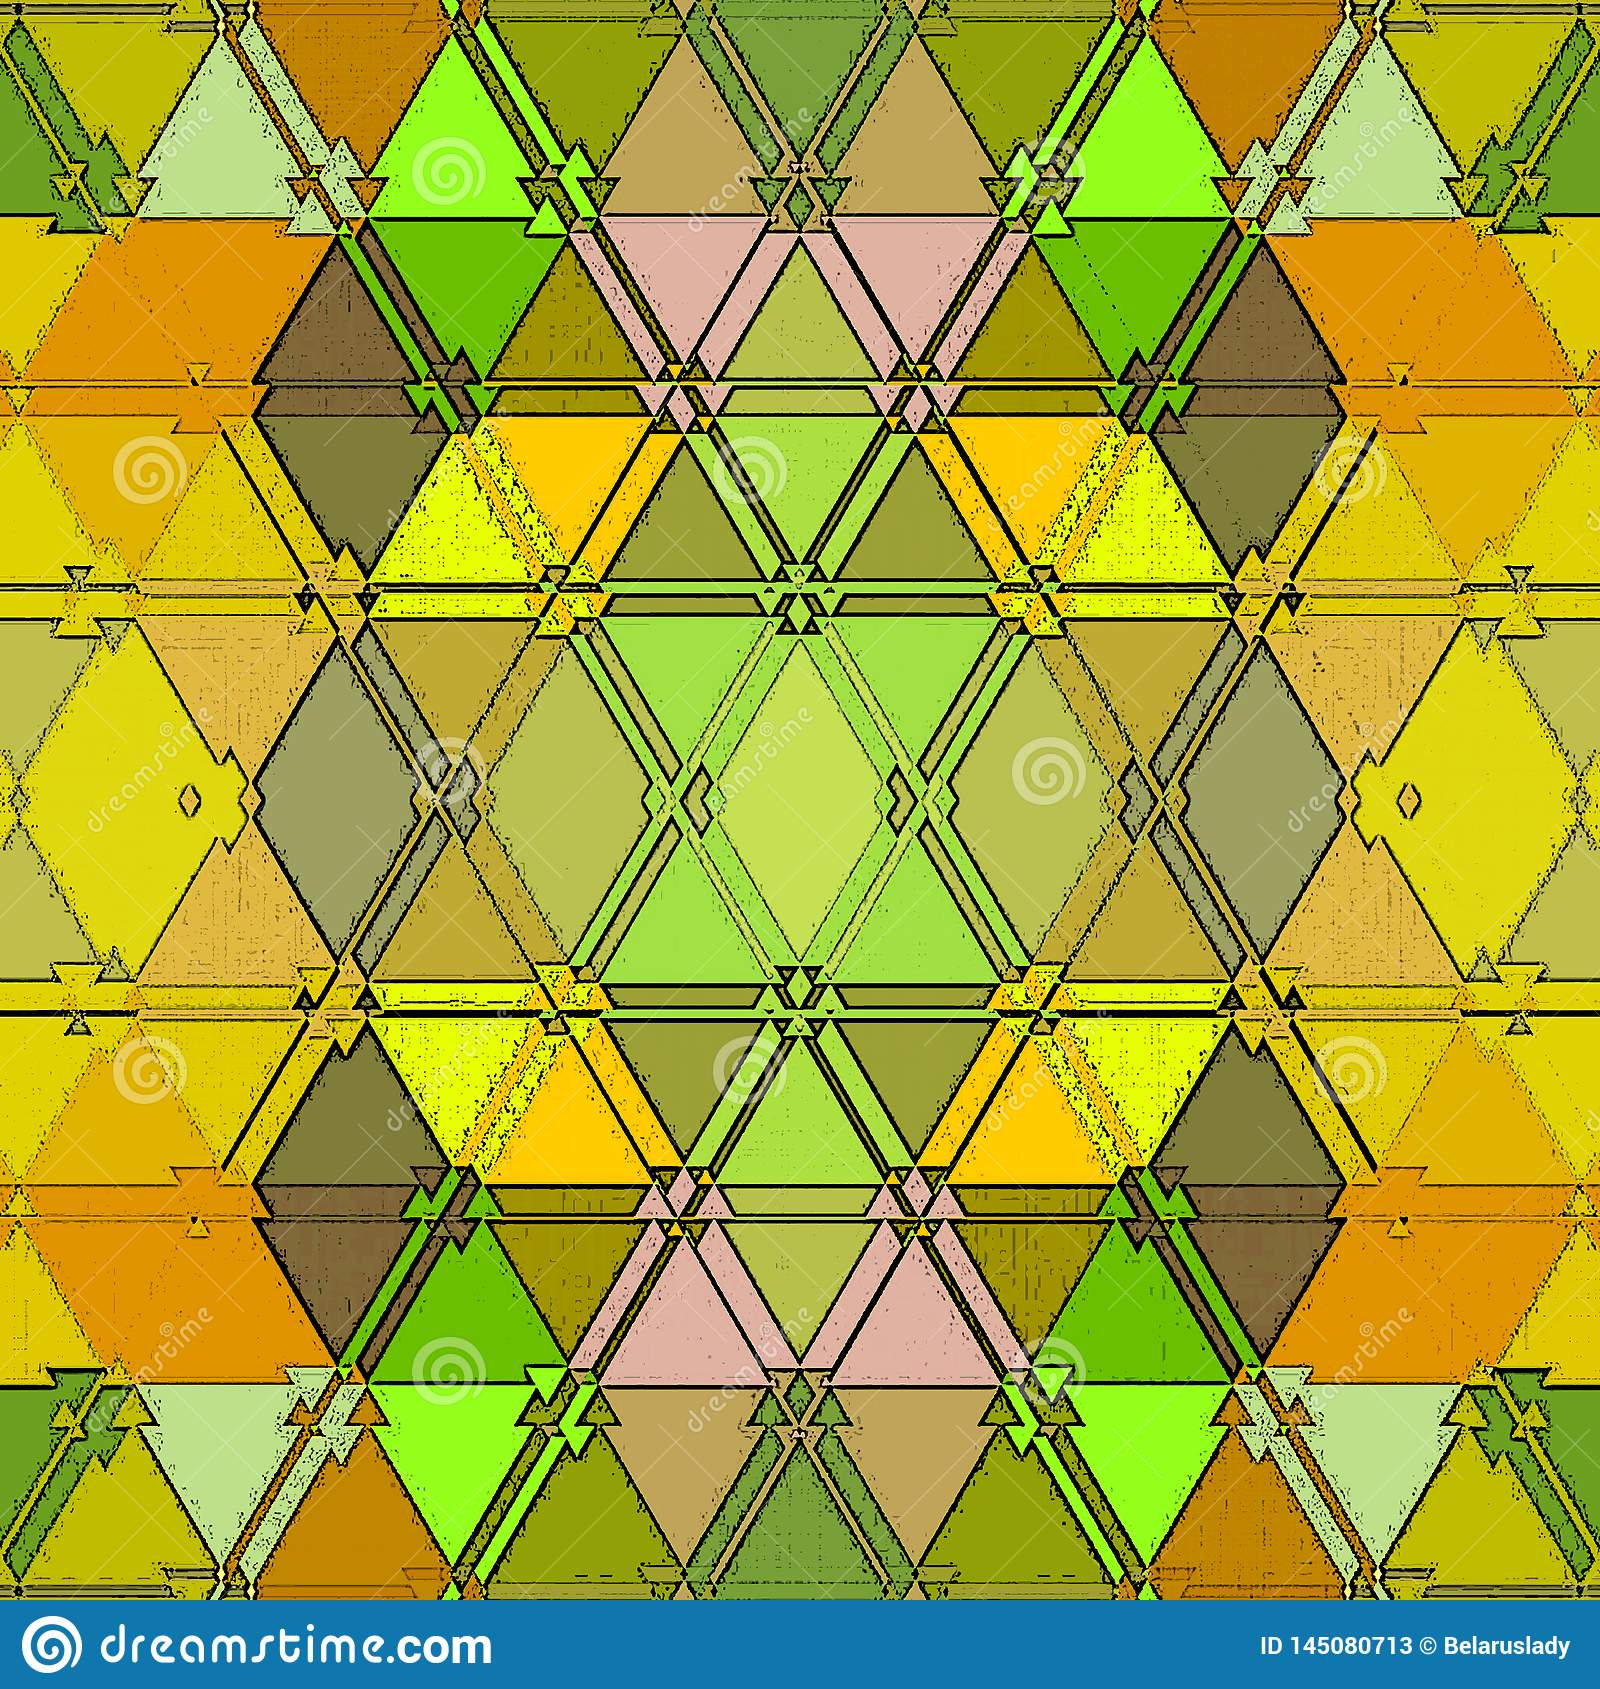 Baroque pattern of continuous triangles texture in yellow and green. Colorful mosaic background